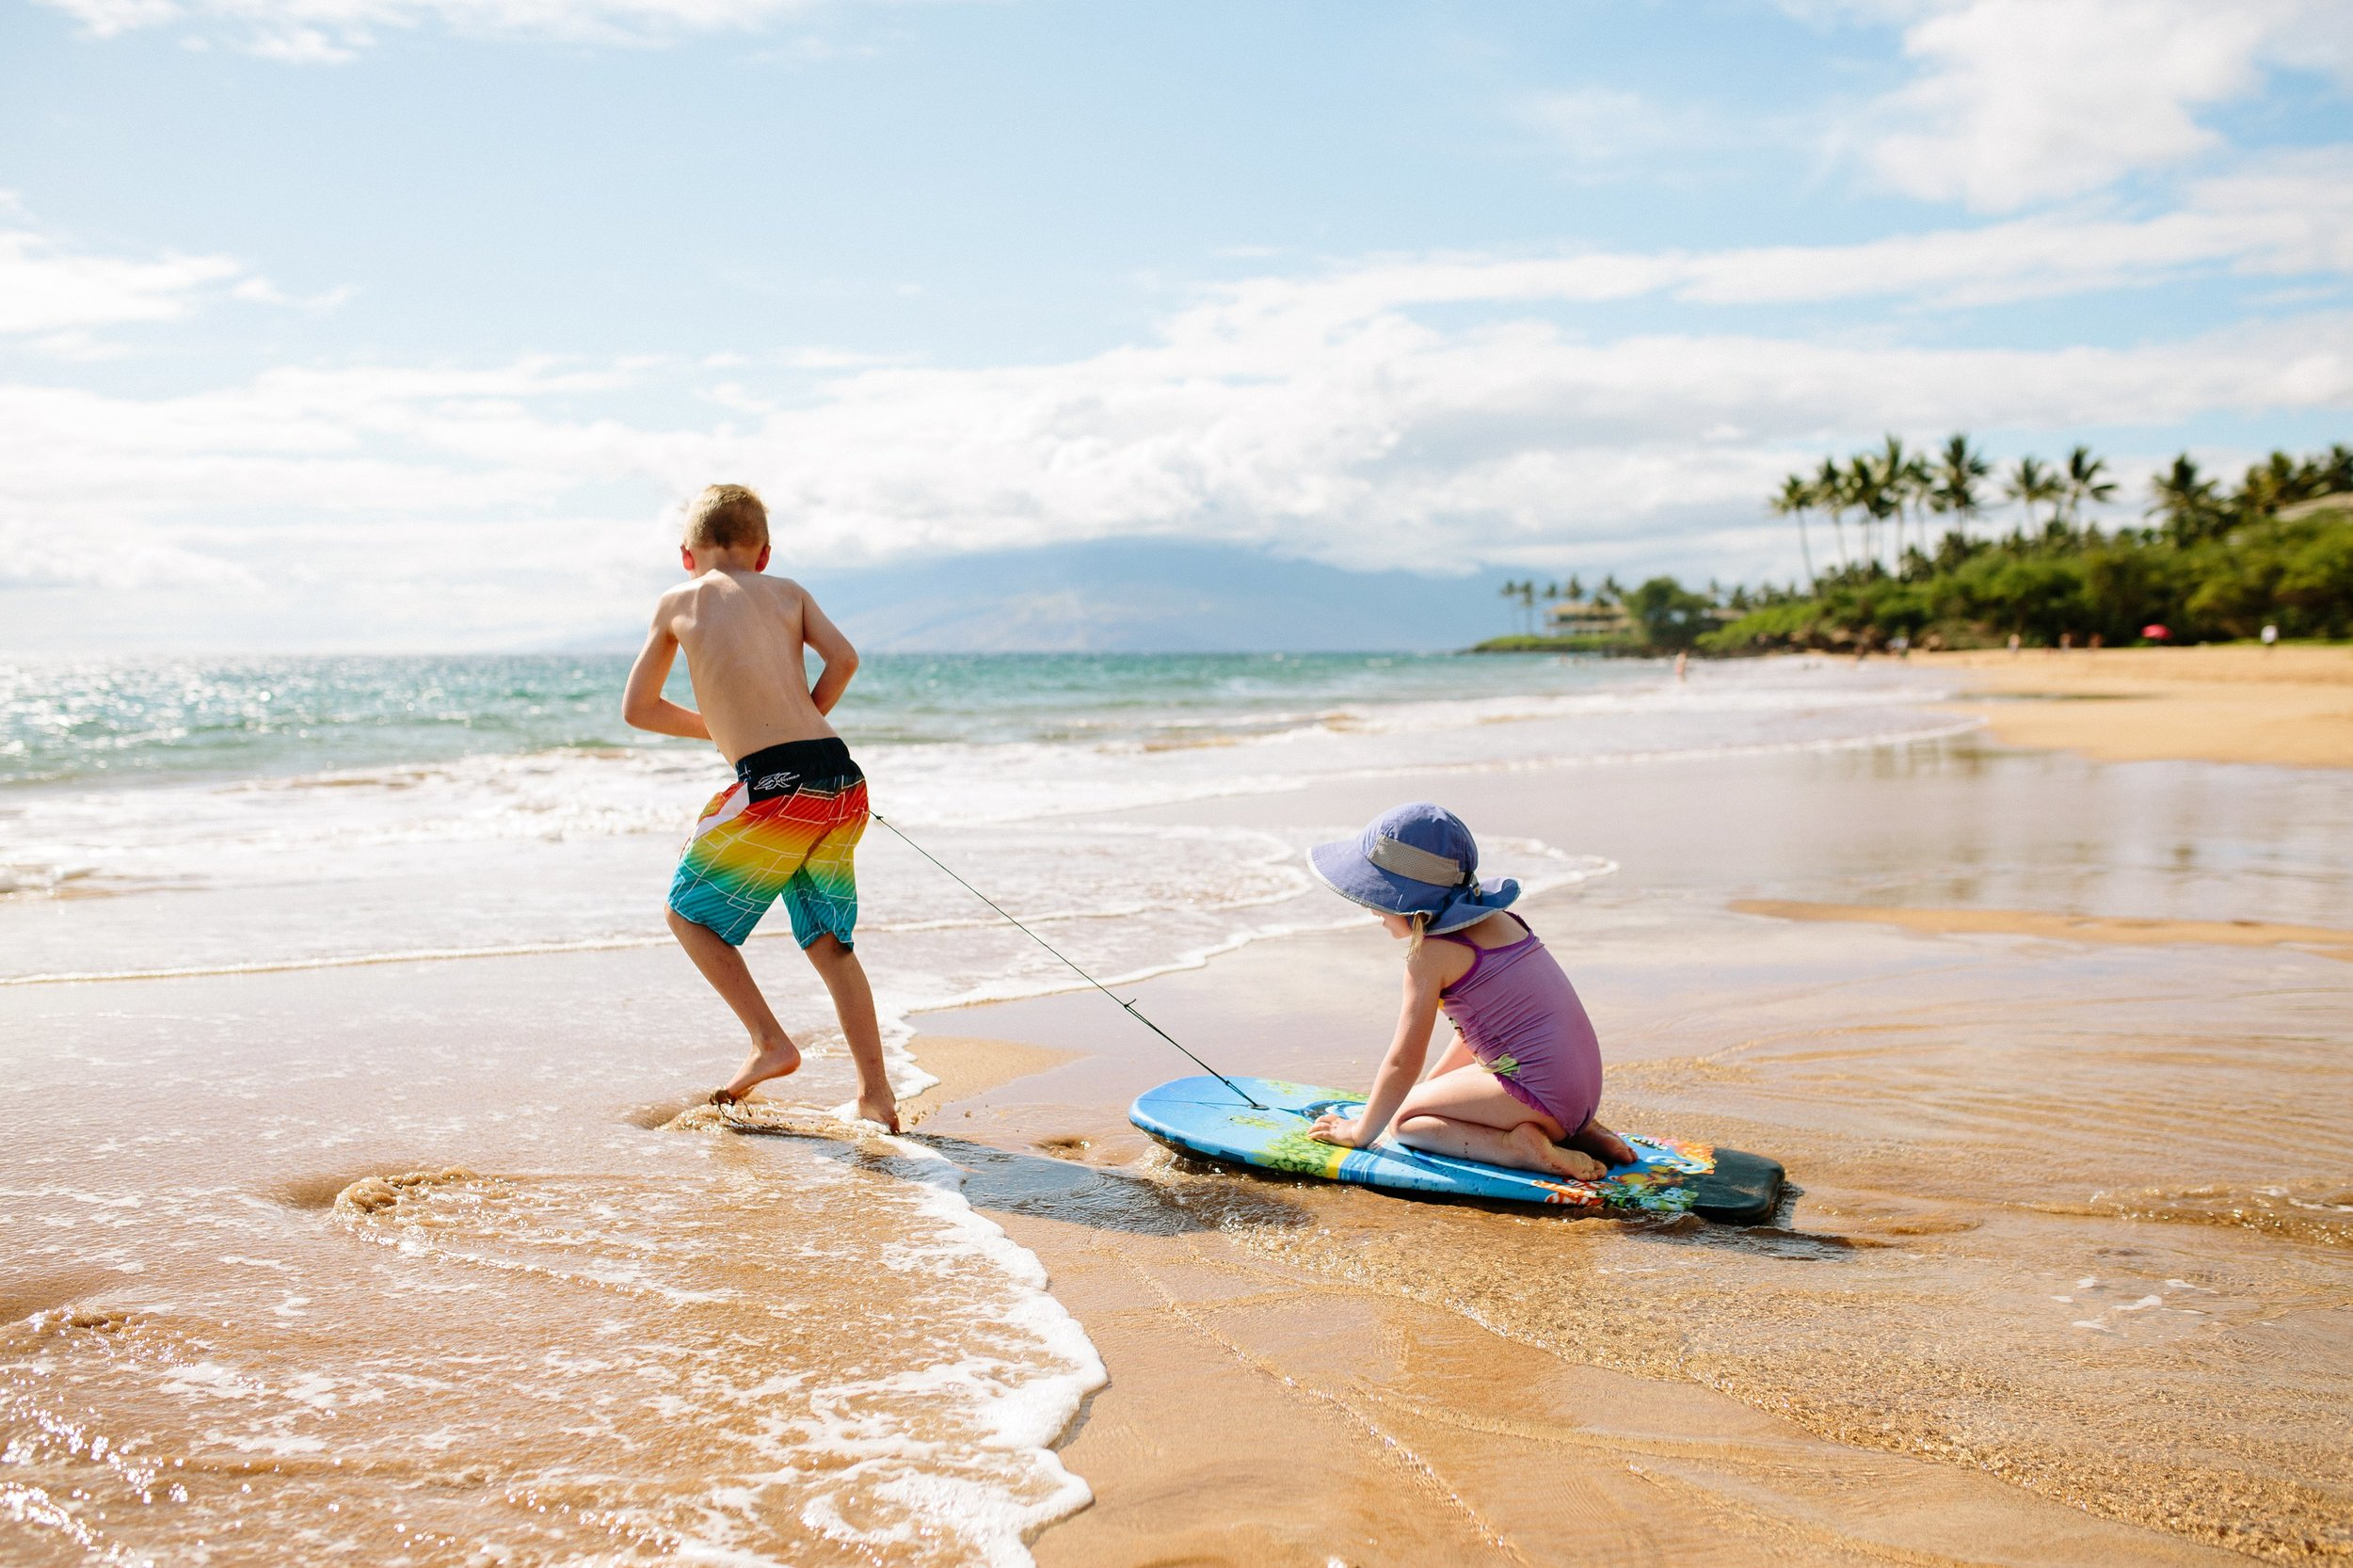 Family Beach Day Photo Session on Maui by Seattle Destionation Lifestyle Photographer Janelle Elaine Photography.jpg